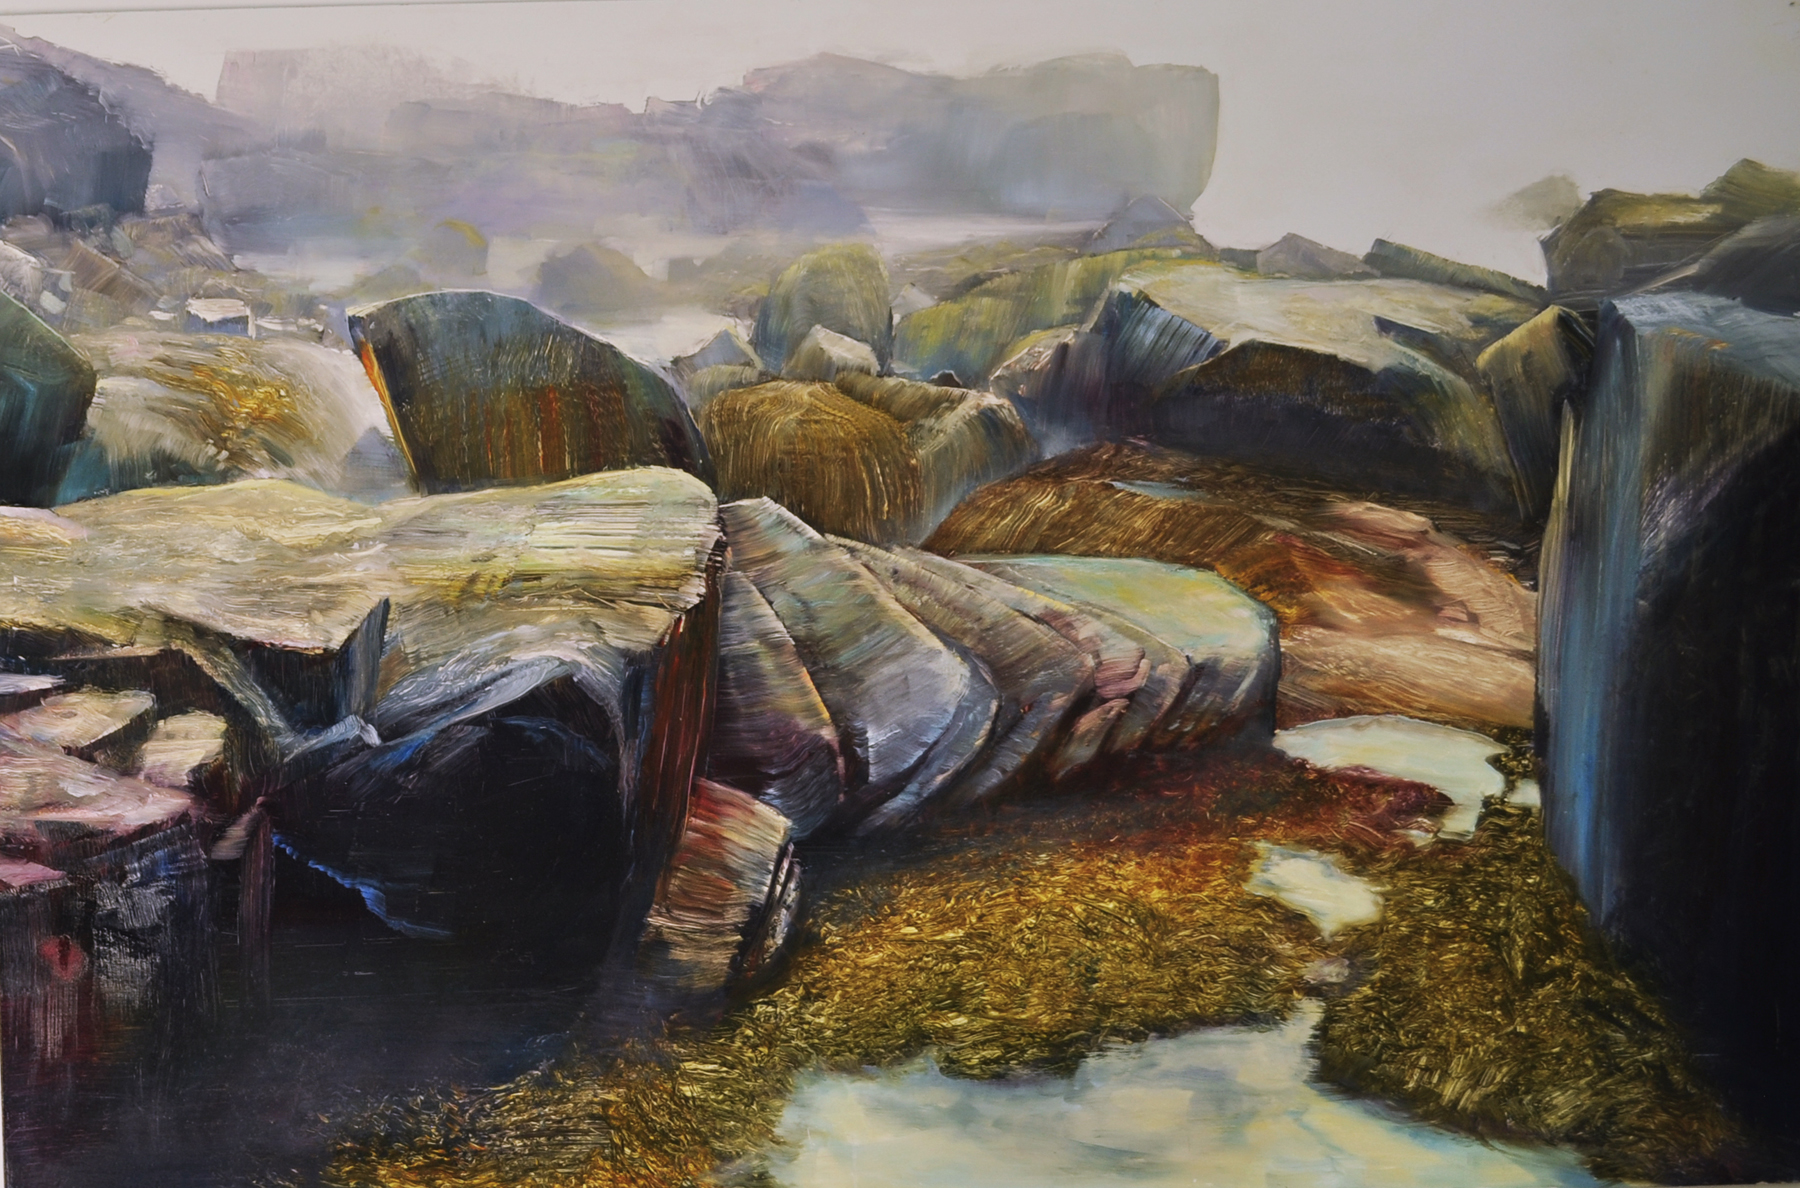 Acadian Shoreline, oil on enameled laminated aluminum, 24x36